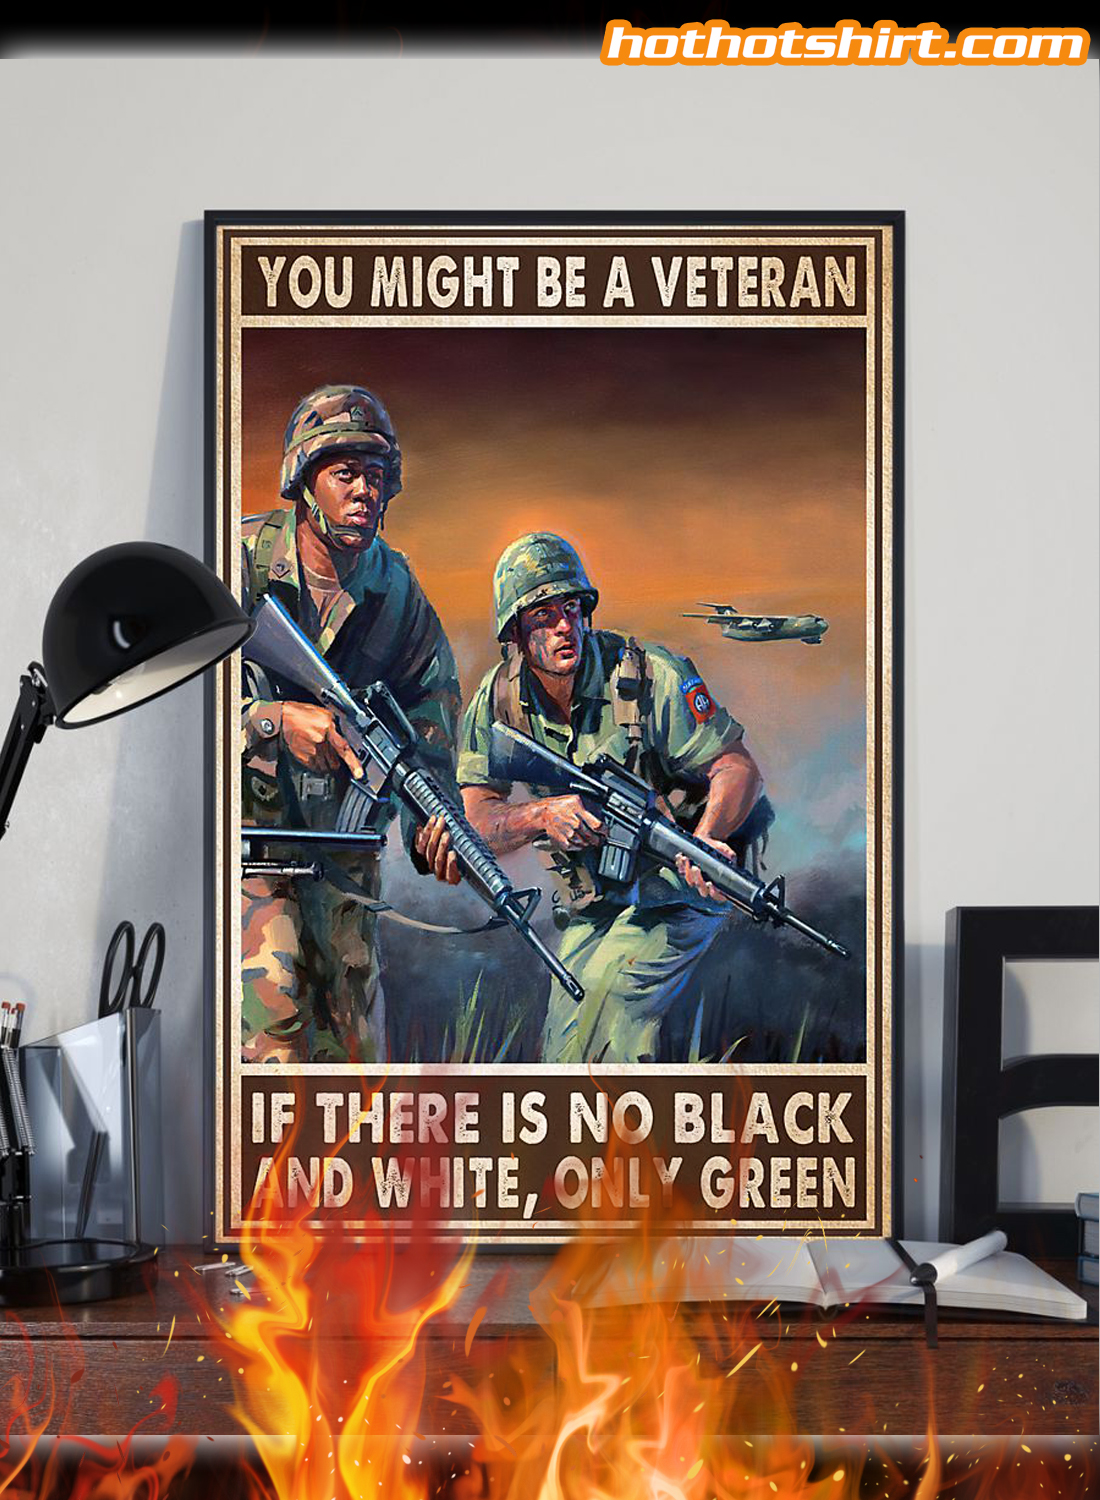 You Might Be A Veteran If There Is No Black And White Only Green Poster 1